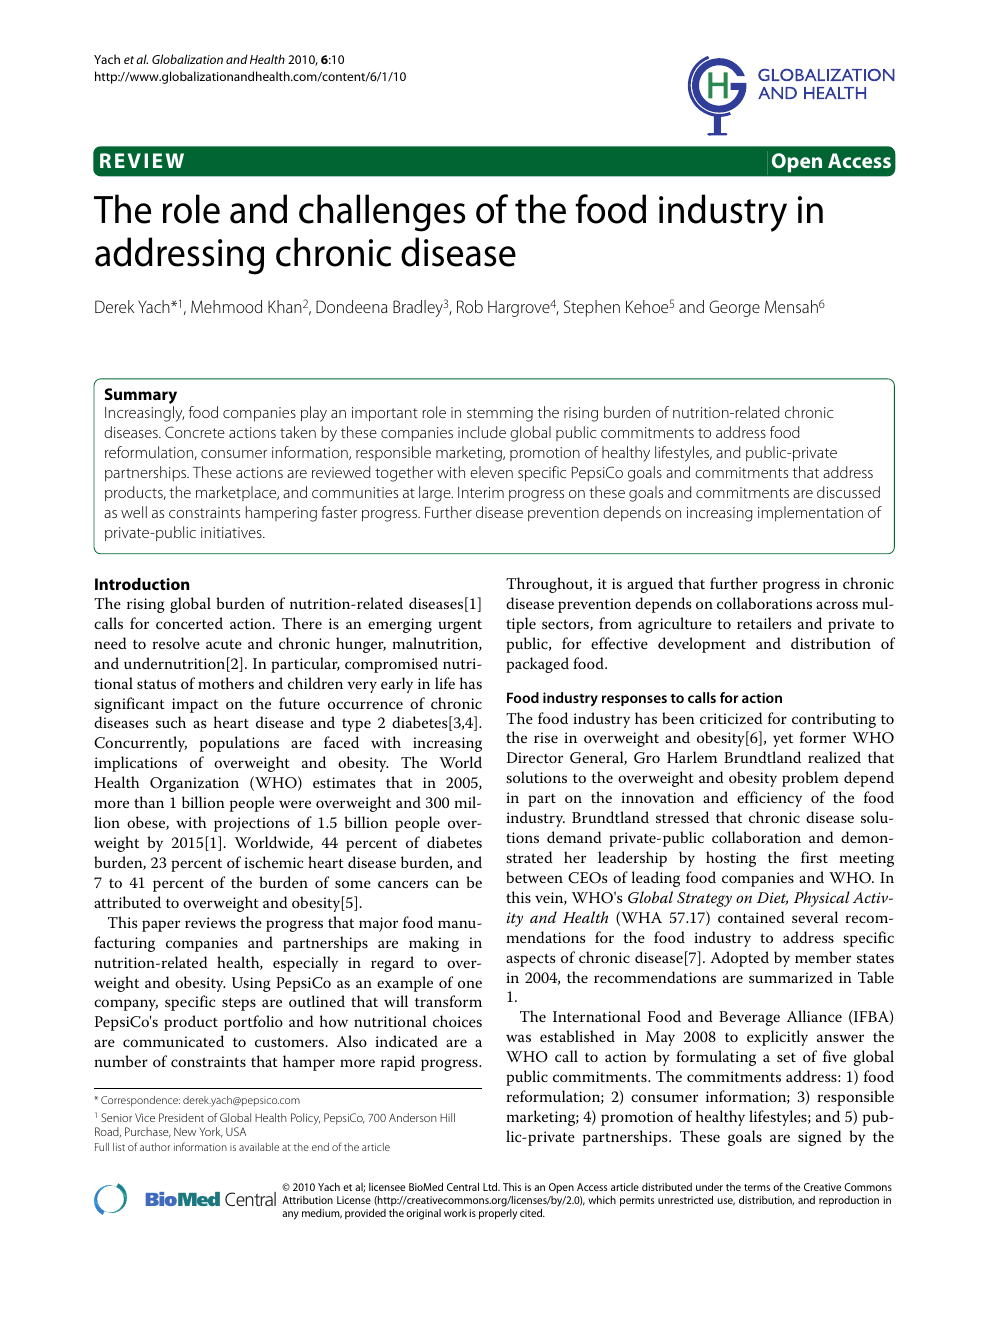 The role and challenges of the food industry in addressing